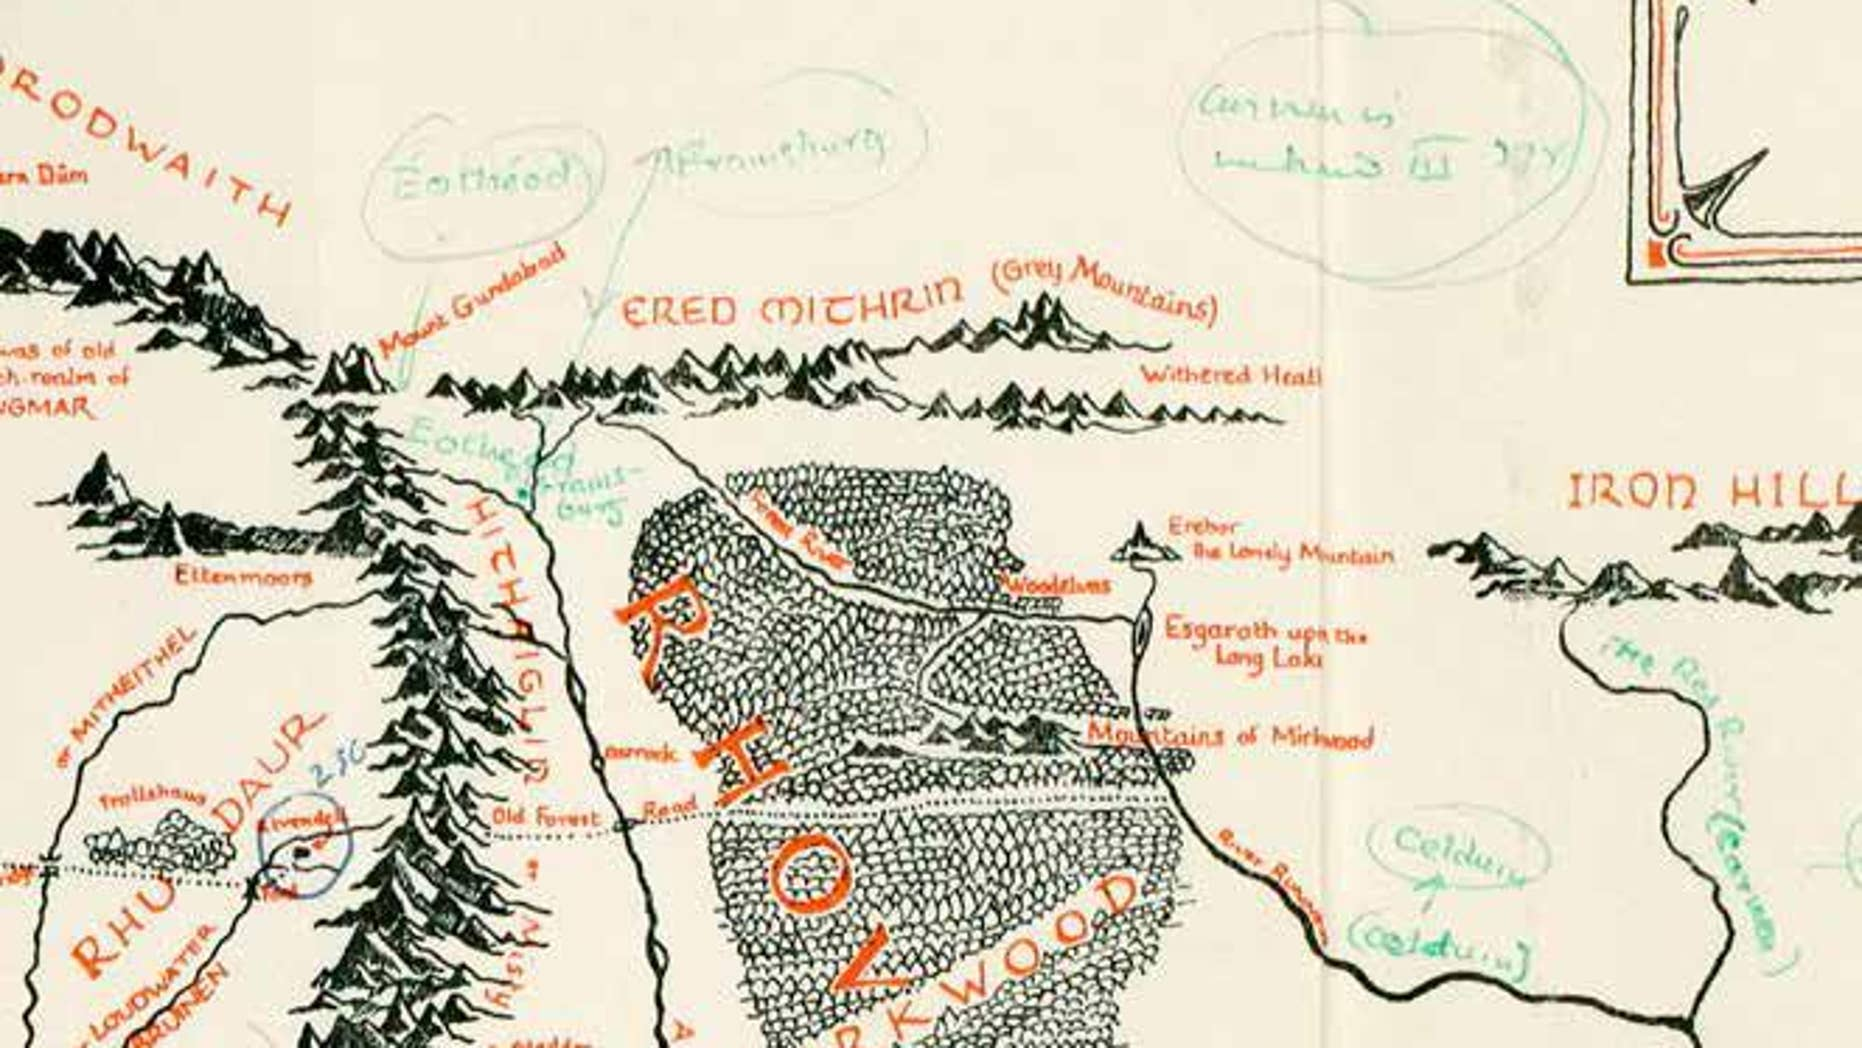 Map of Middle-Earth annotated by JRR Tolkien (Blackwell's Rare Books).